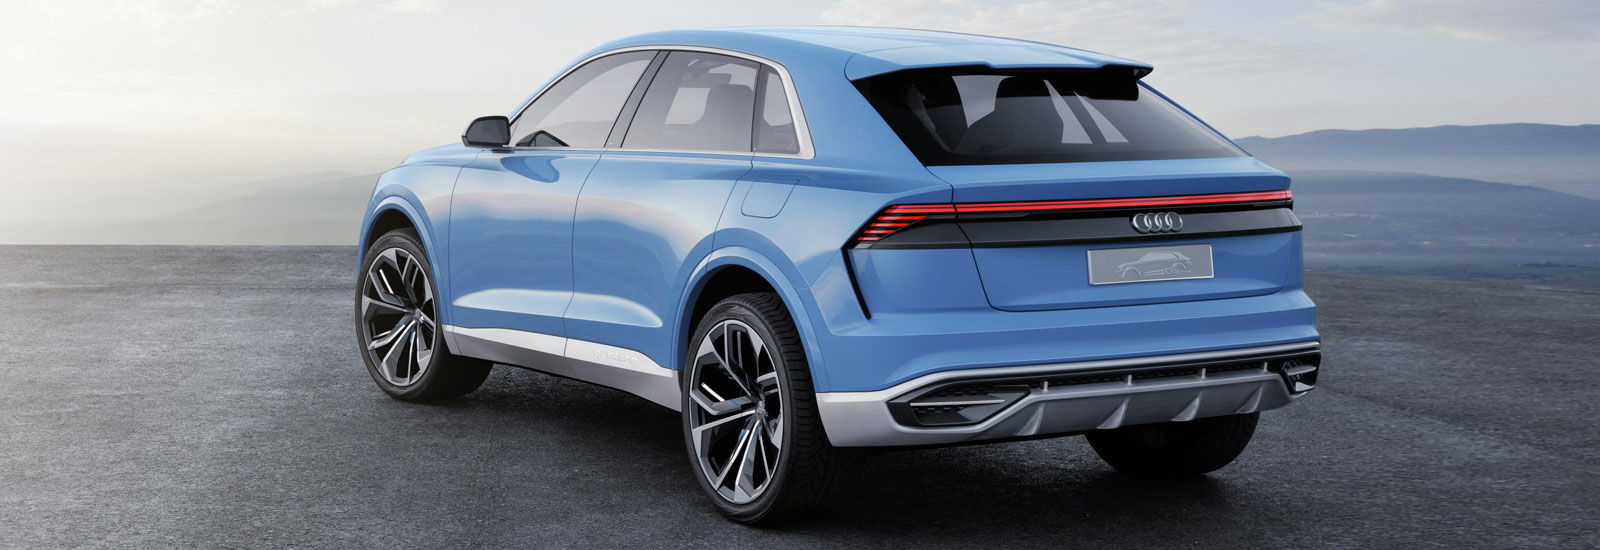 Audi Q8 2017 price, specs and release date | carwow